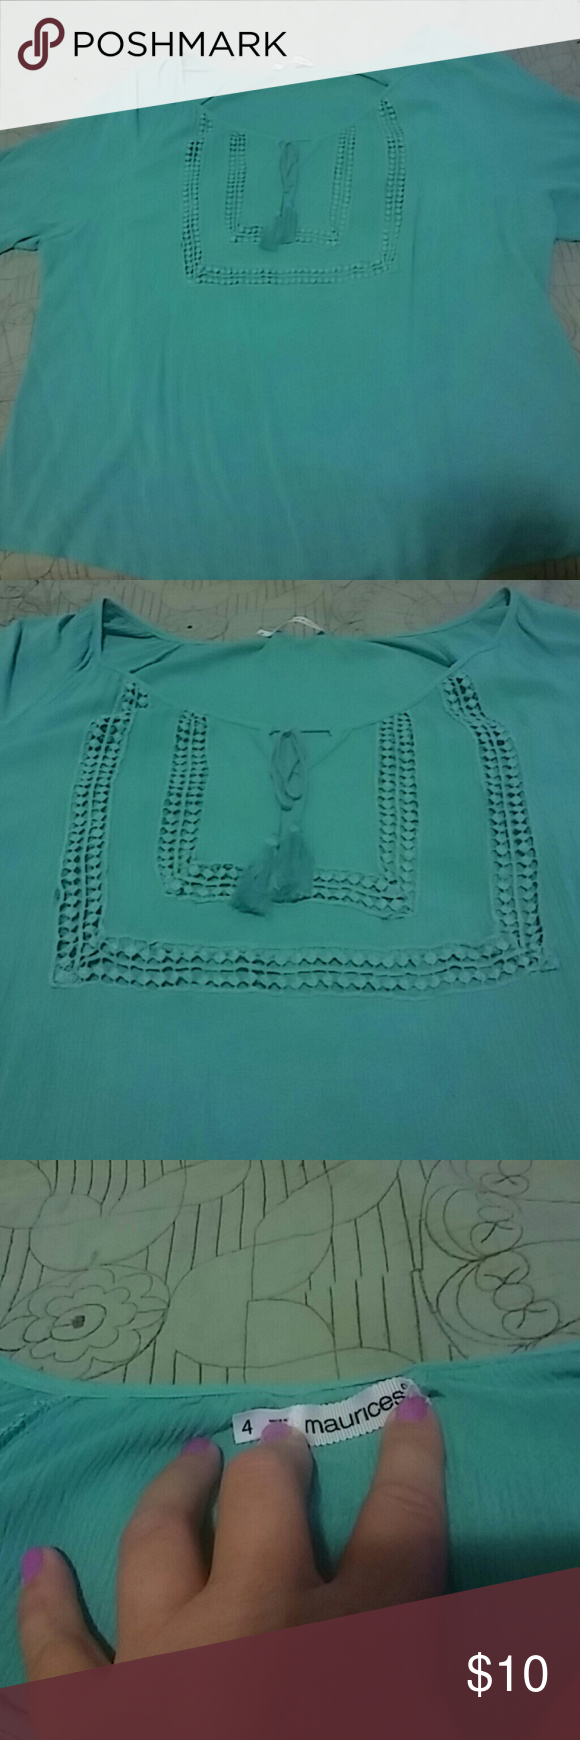 Maurices Boho top size 4 Plus size, size 4 Maurices light Teal color or Macrame and tassles.  Super cute, barely worn once.  Just not my style. Maurices Tops Blouses